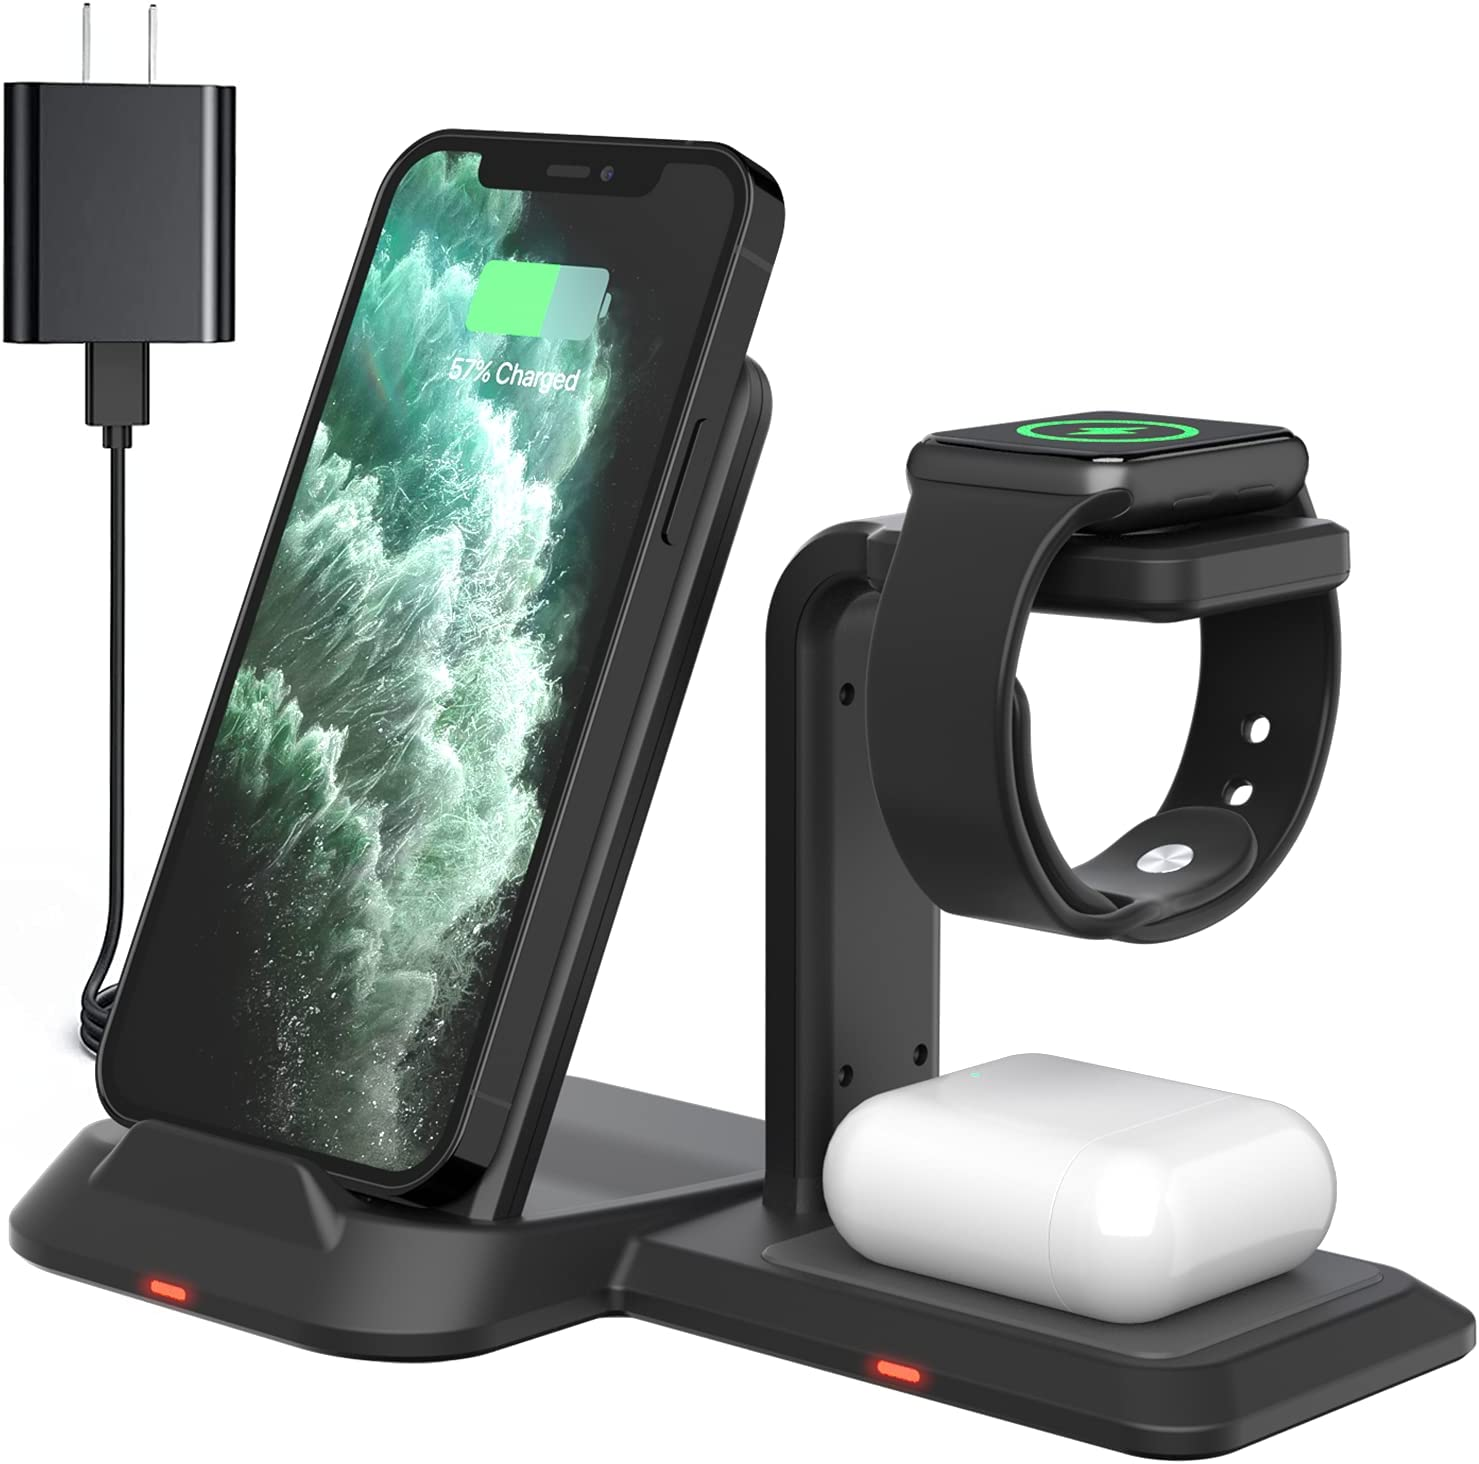 Wireless Charger Stand, GEEKERA 3 in 1 Wireless Charging Station for Apple Products Fast Wireless Charger for iWatch 6/SE/5/4/3/2, Airpods Pro/2, iPhone 12/12 Pro/11 Series/XS Max/XR/XS/X/8/8 Plus